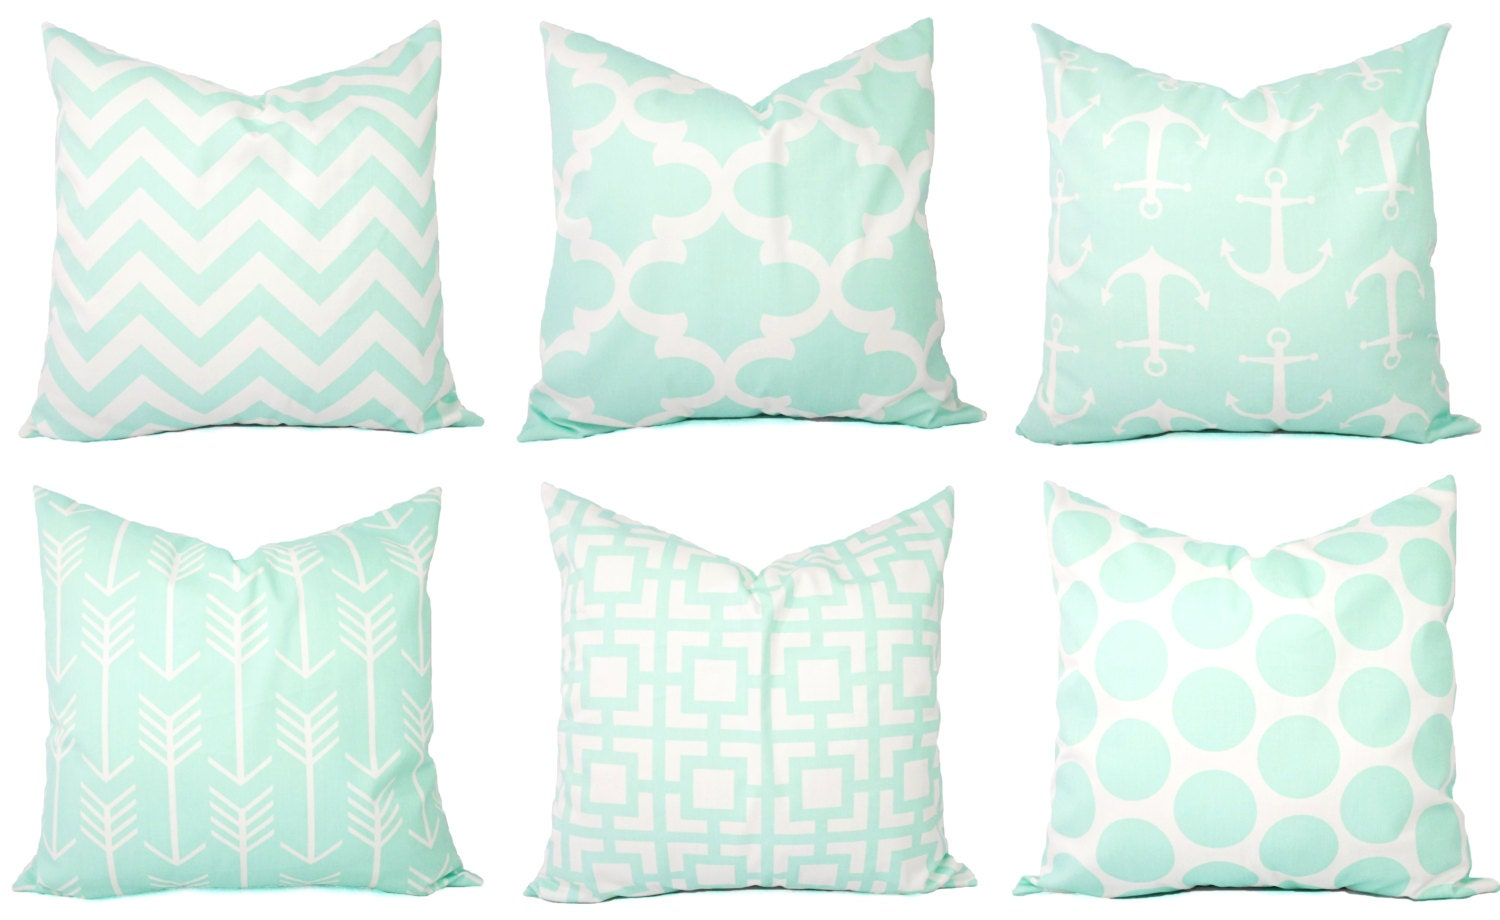 Mint Pillow Covers Mint Green and White Throw Pillows